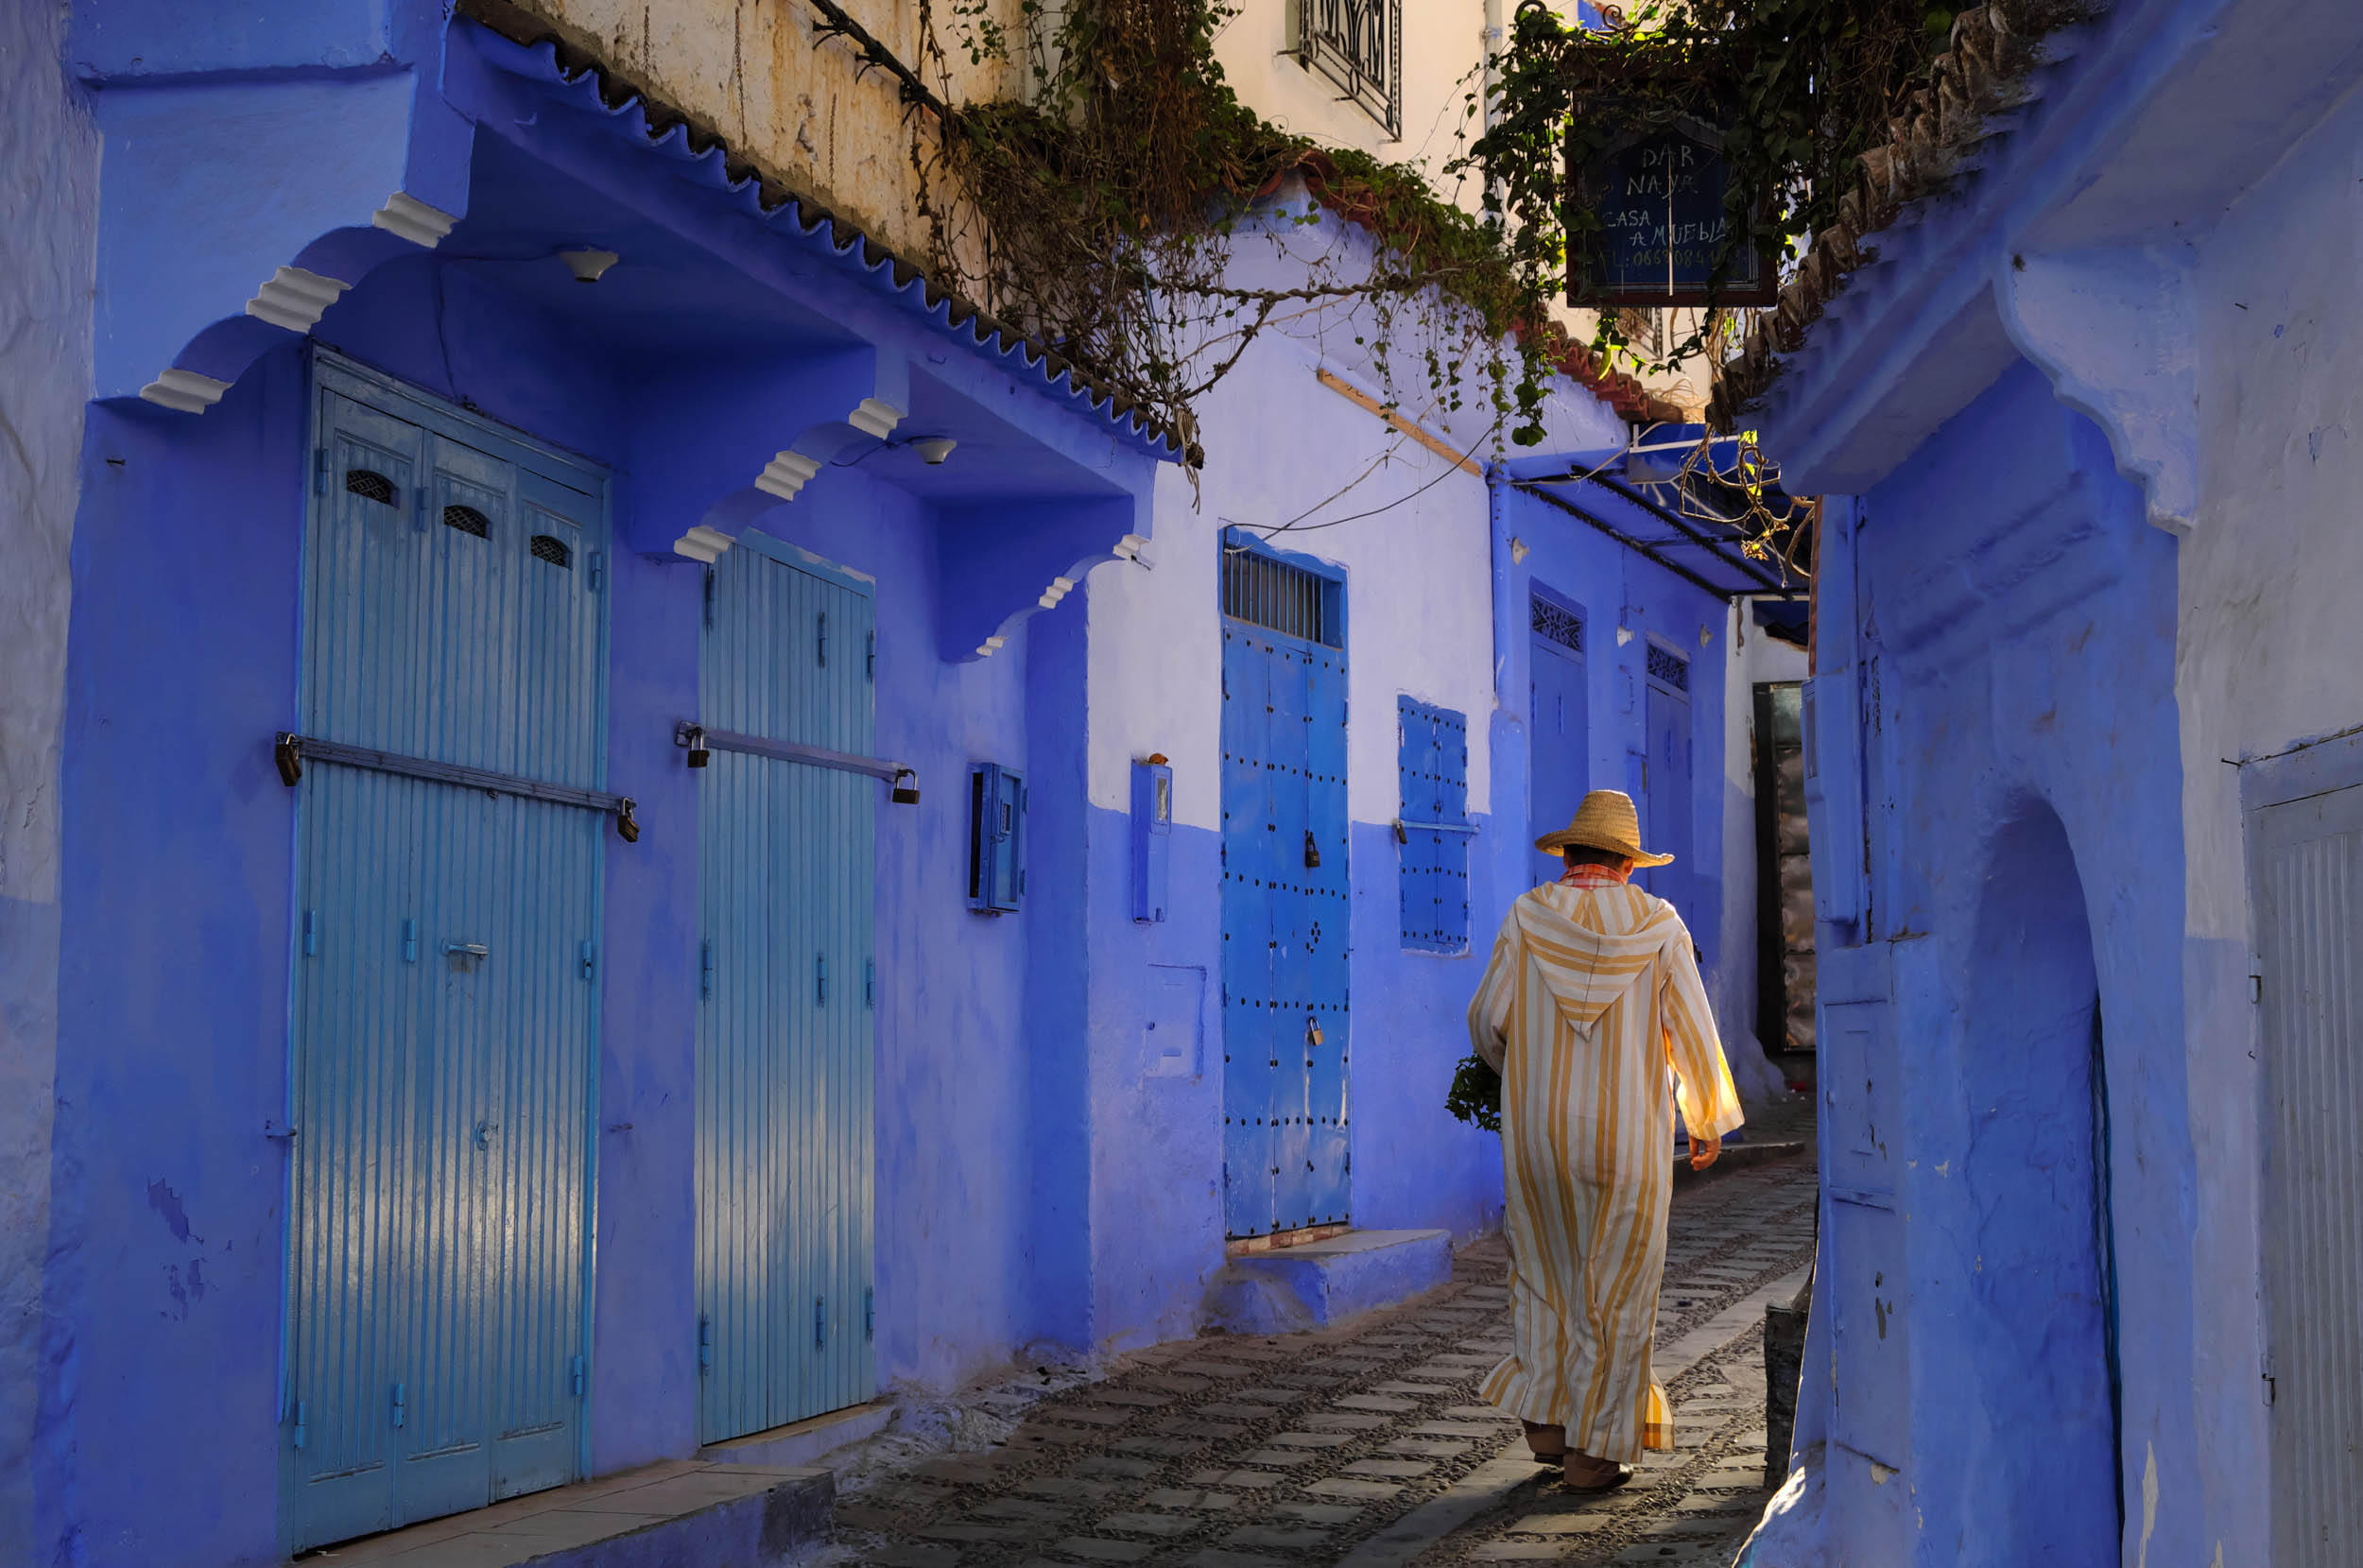 Early morning stroll, on the way to the market, in the medina of Chefchaouen -Morocco's Blue City.